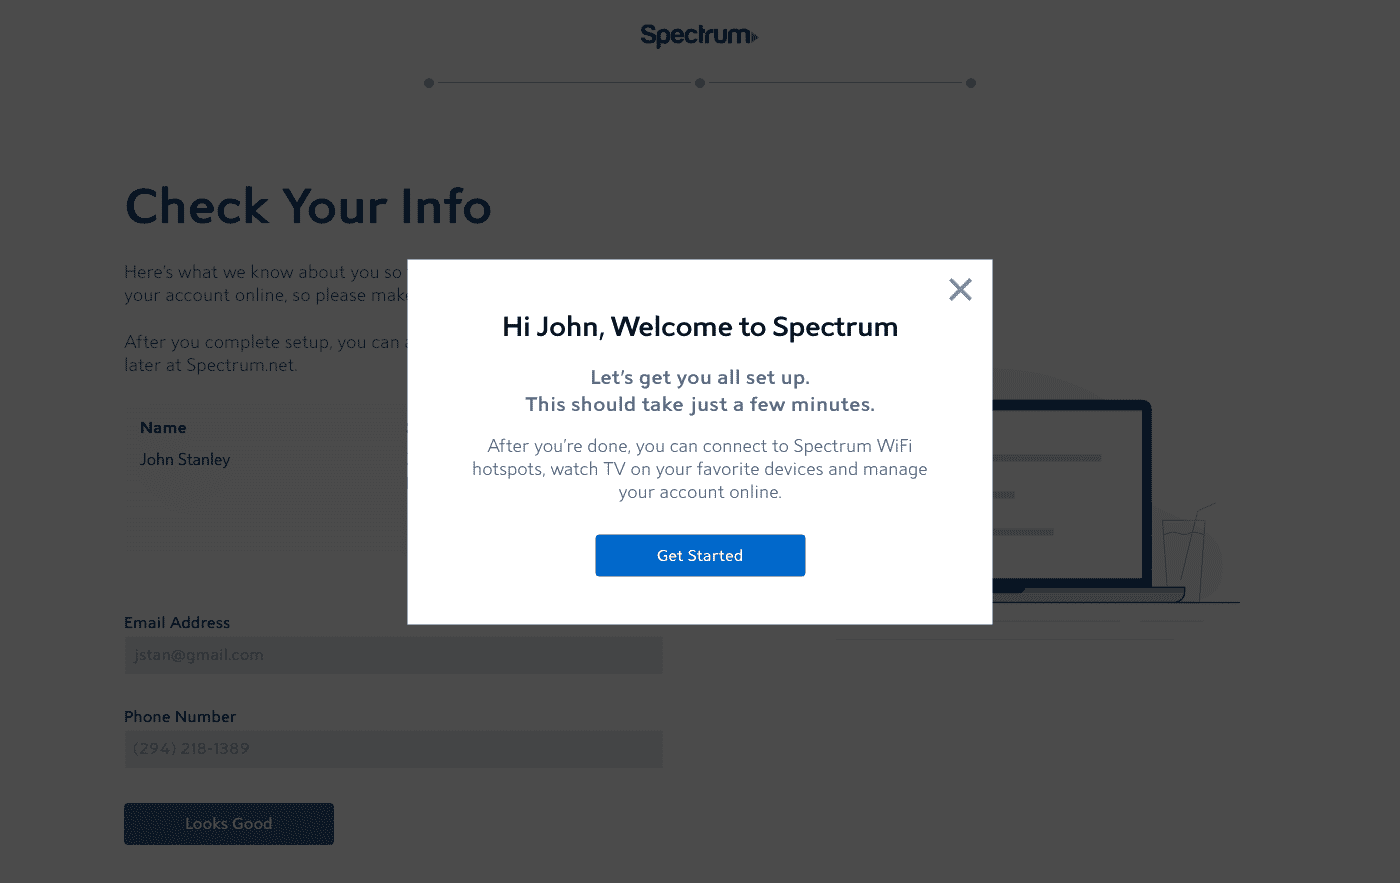 Spectrum: New Customer Onboarding - Dave Chung - Content